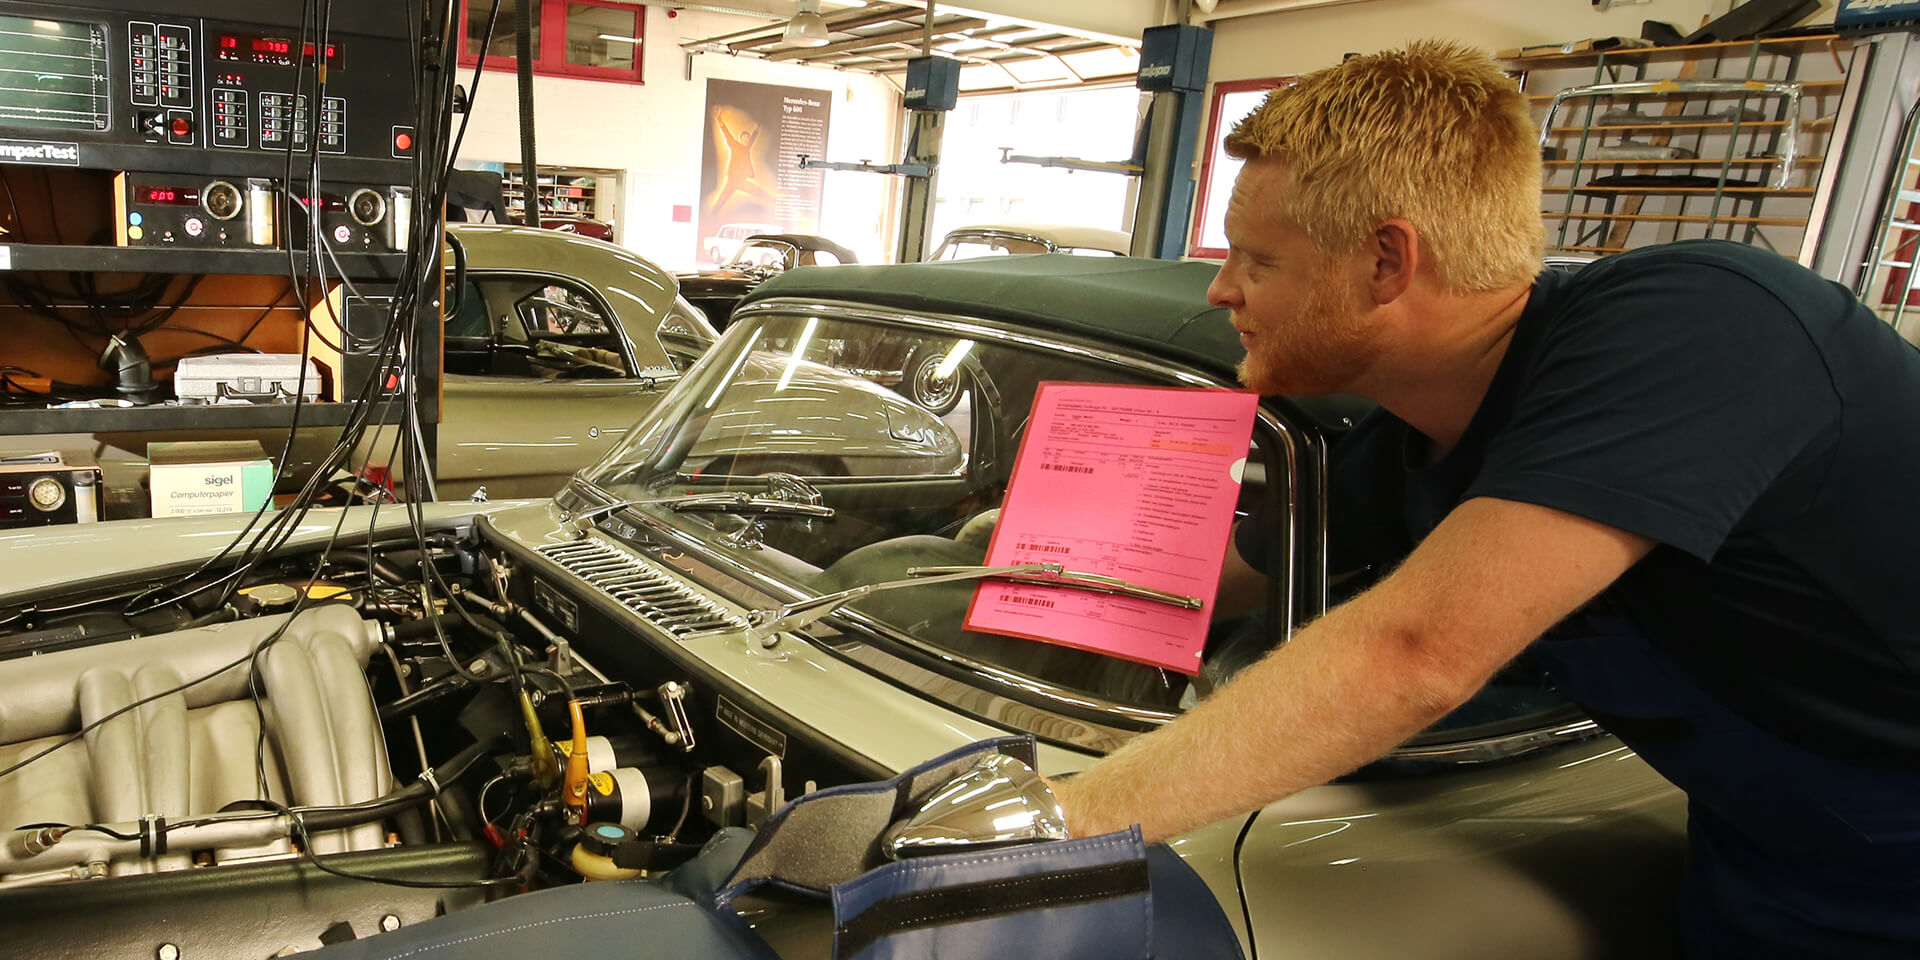 Only the best for your vintage car – Kienle customer service